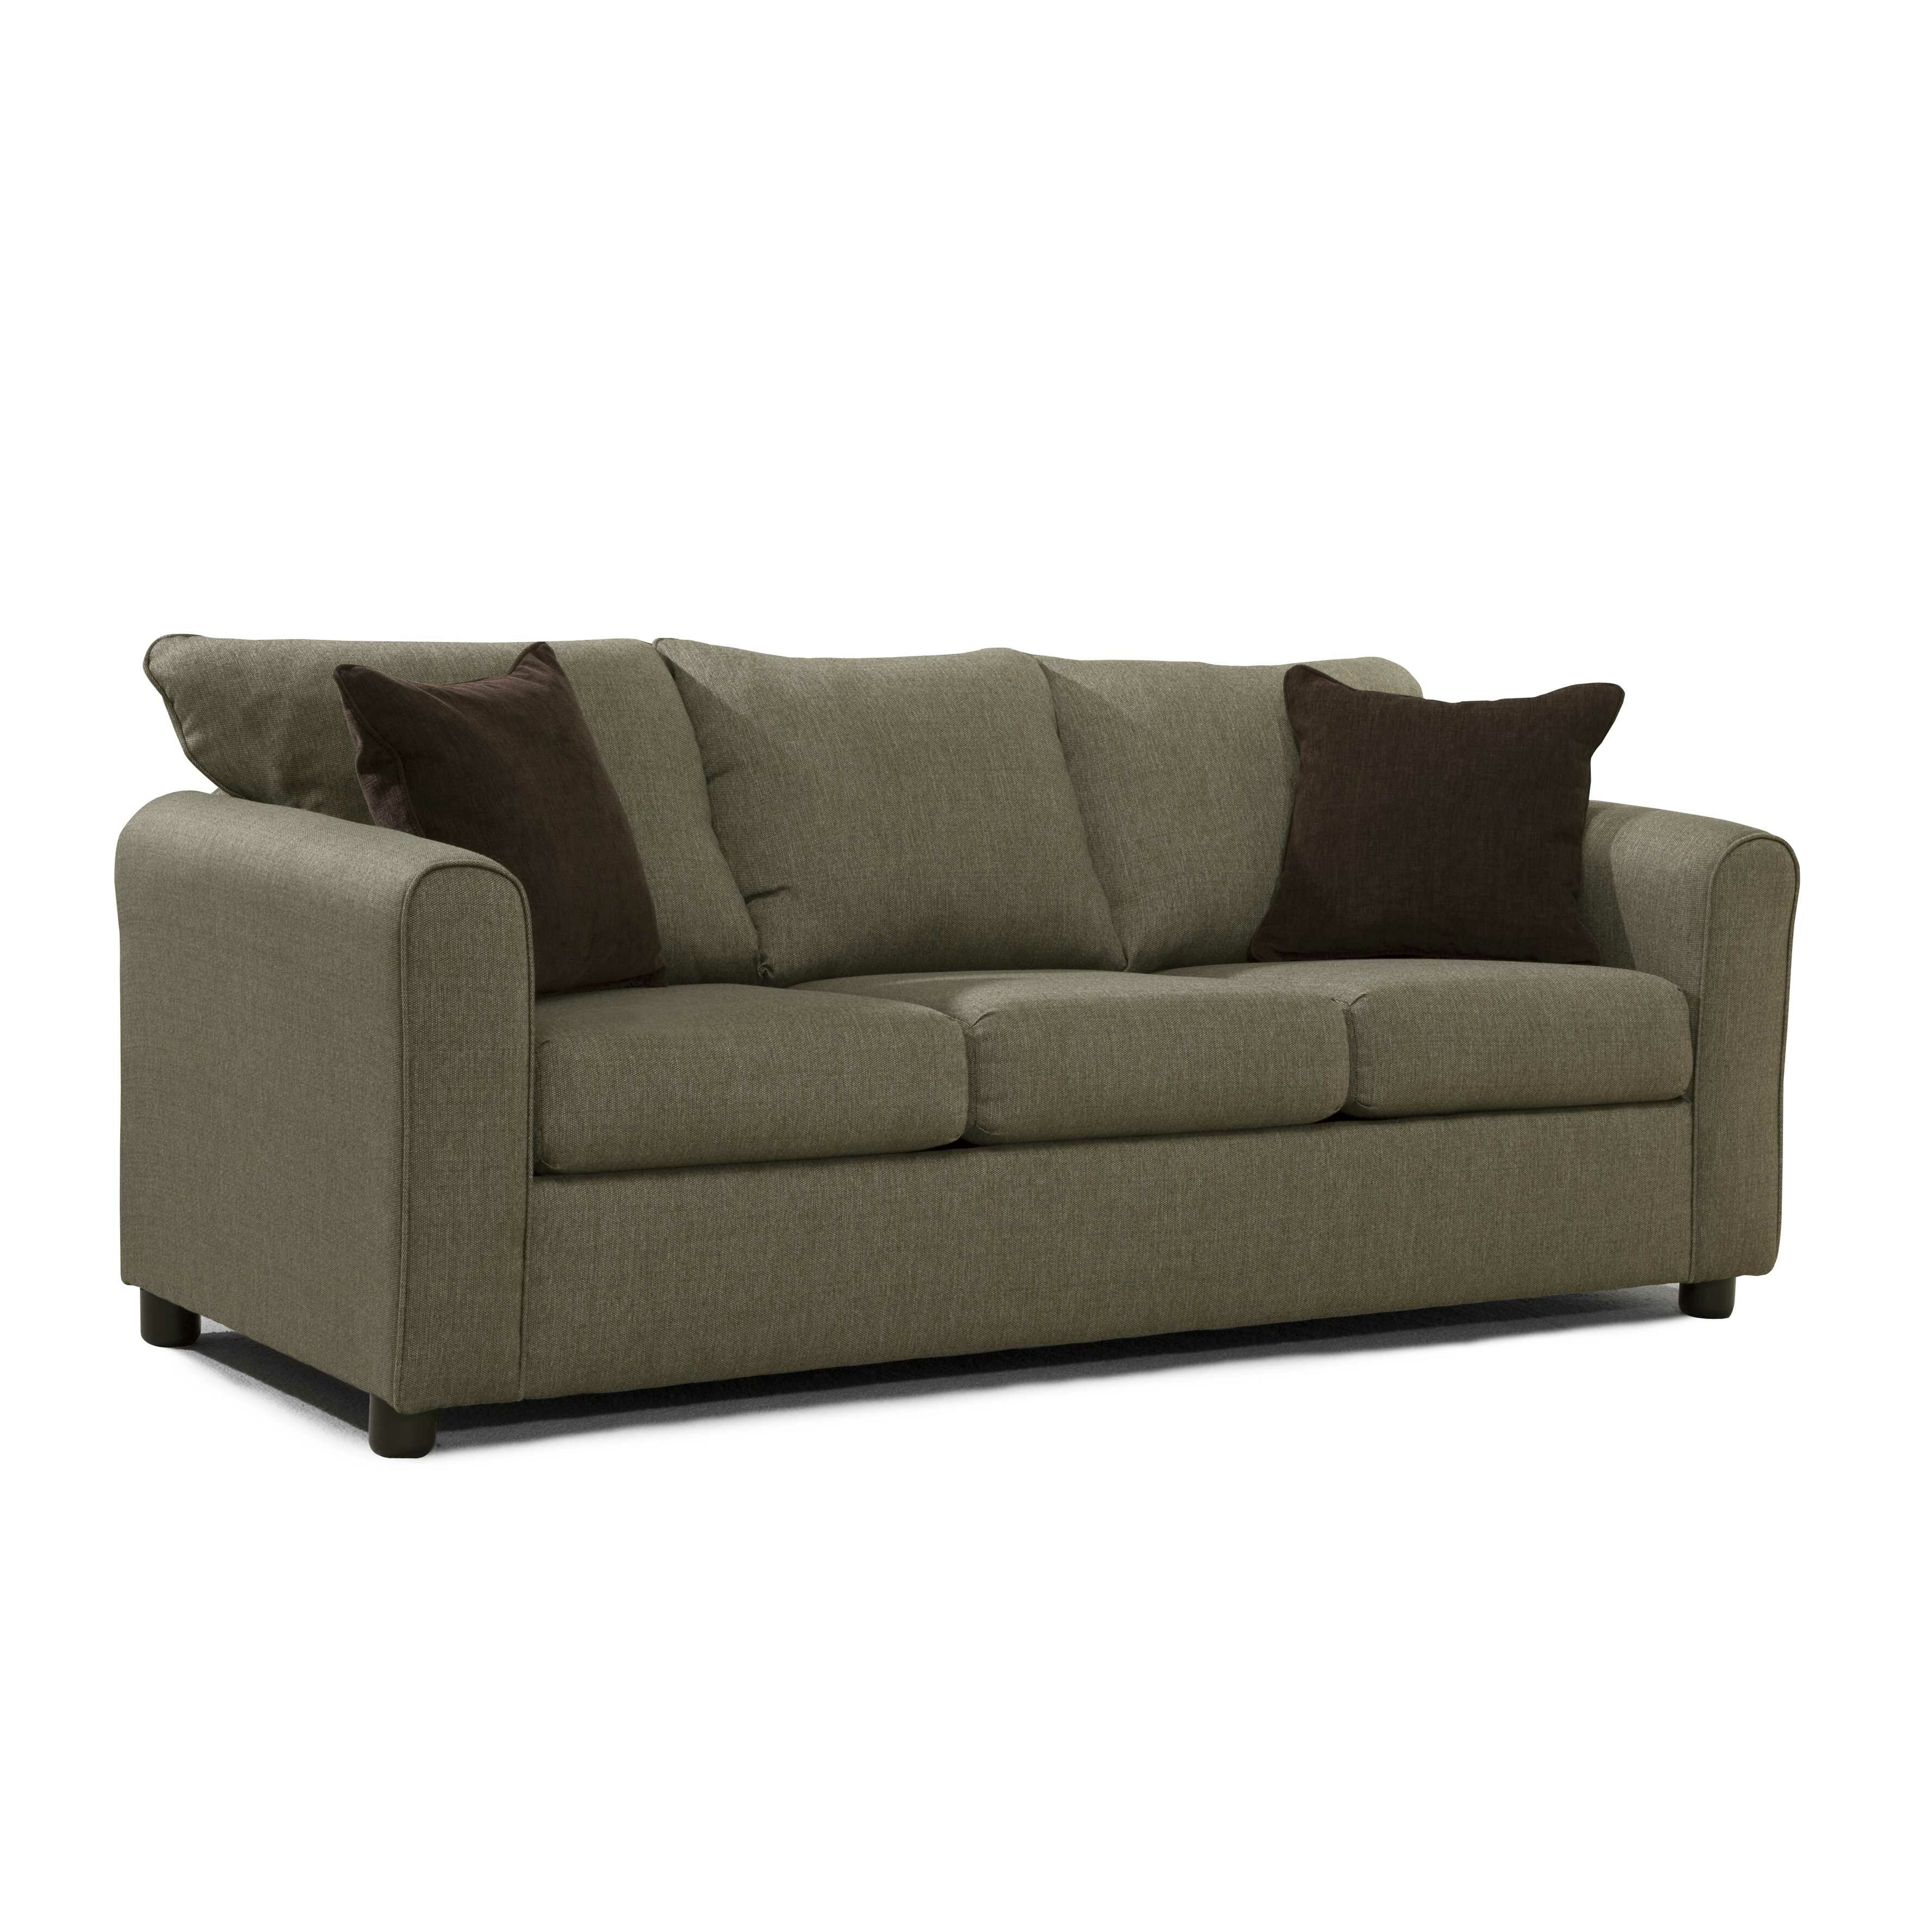 Martin House Modern Sleeper Sofa : Wayfair